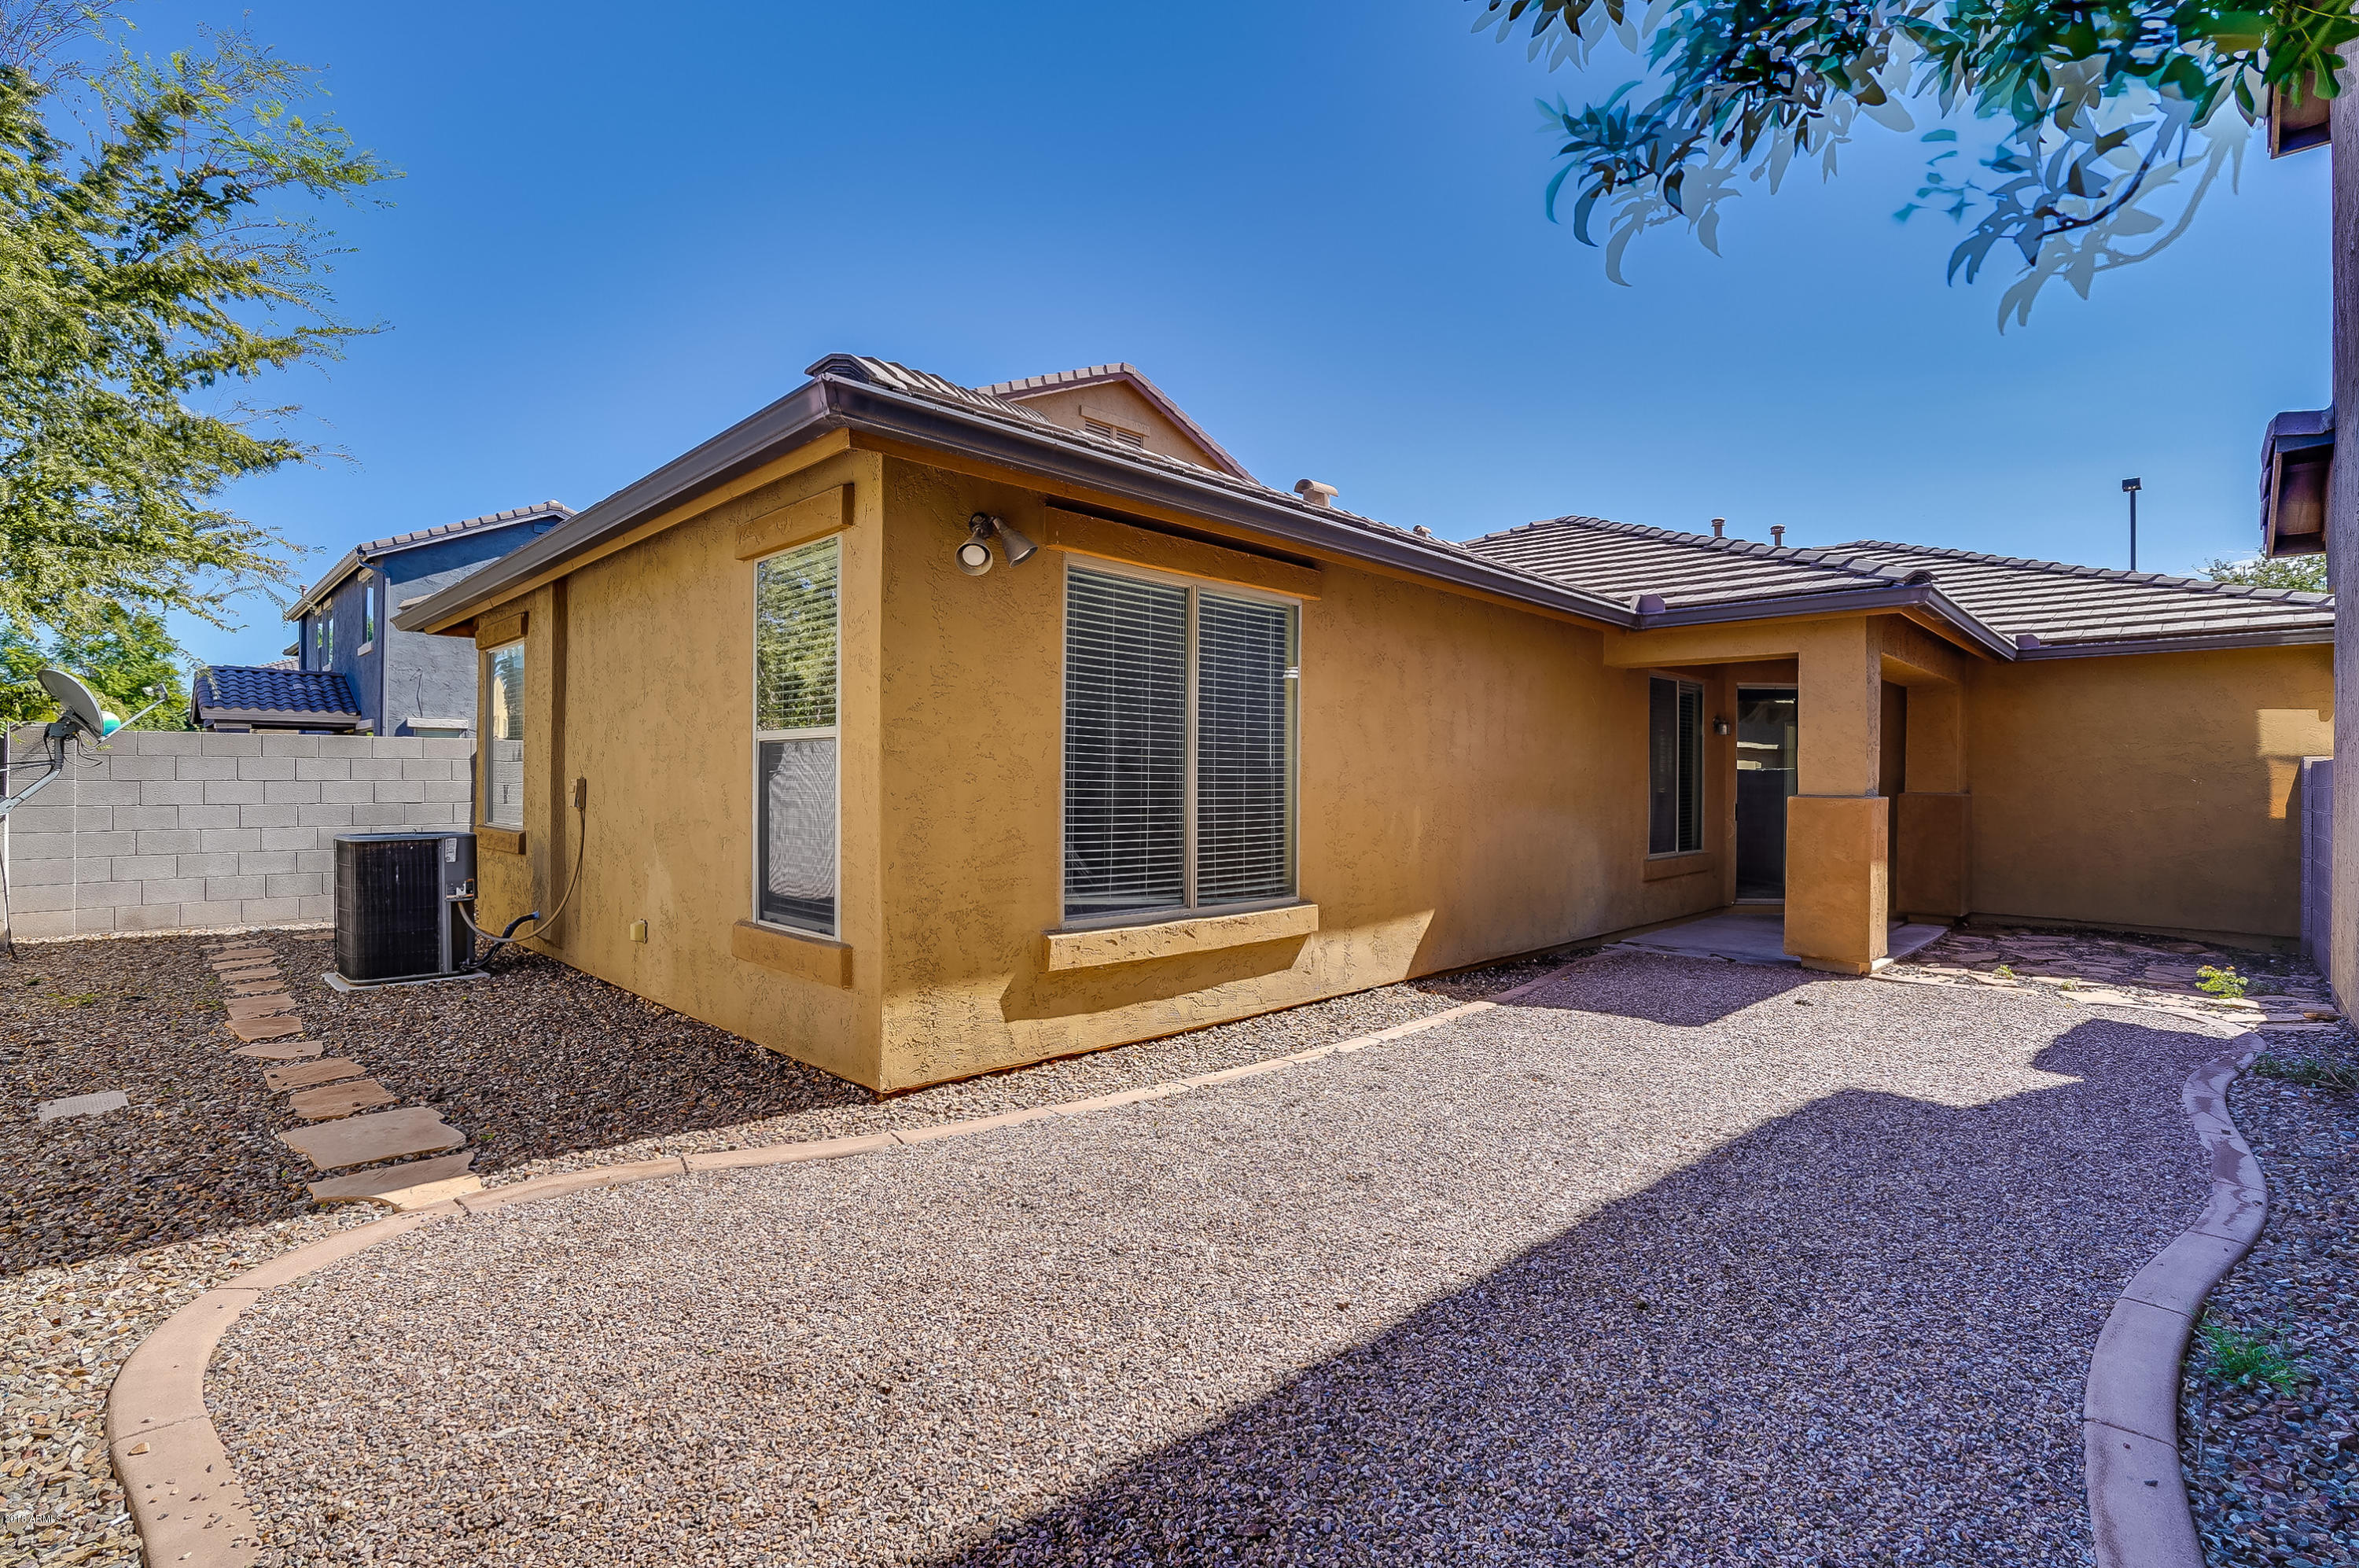 MLS 5835552 3840 E FAIRVIEW Street, Gilbert, AZ 85295 Gilbert AZ Pecos Manor